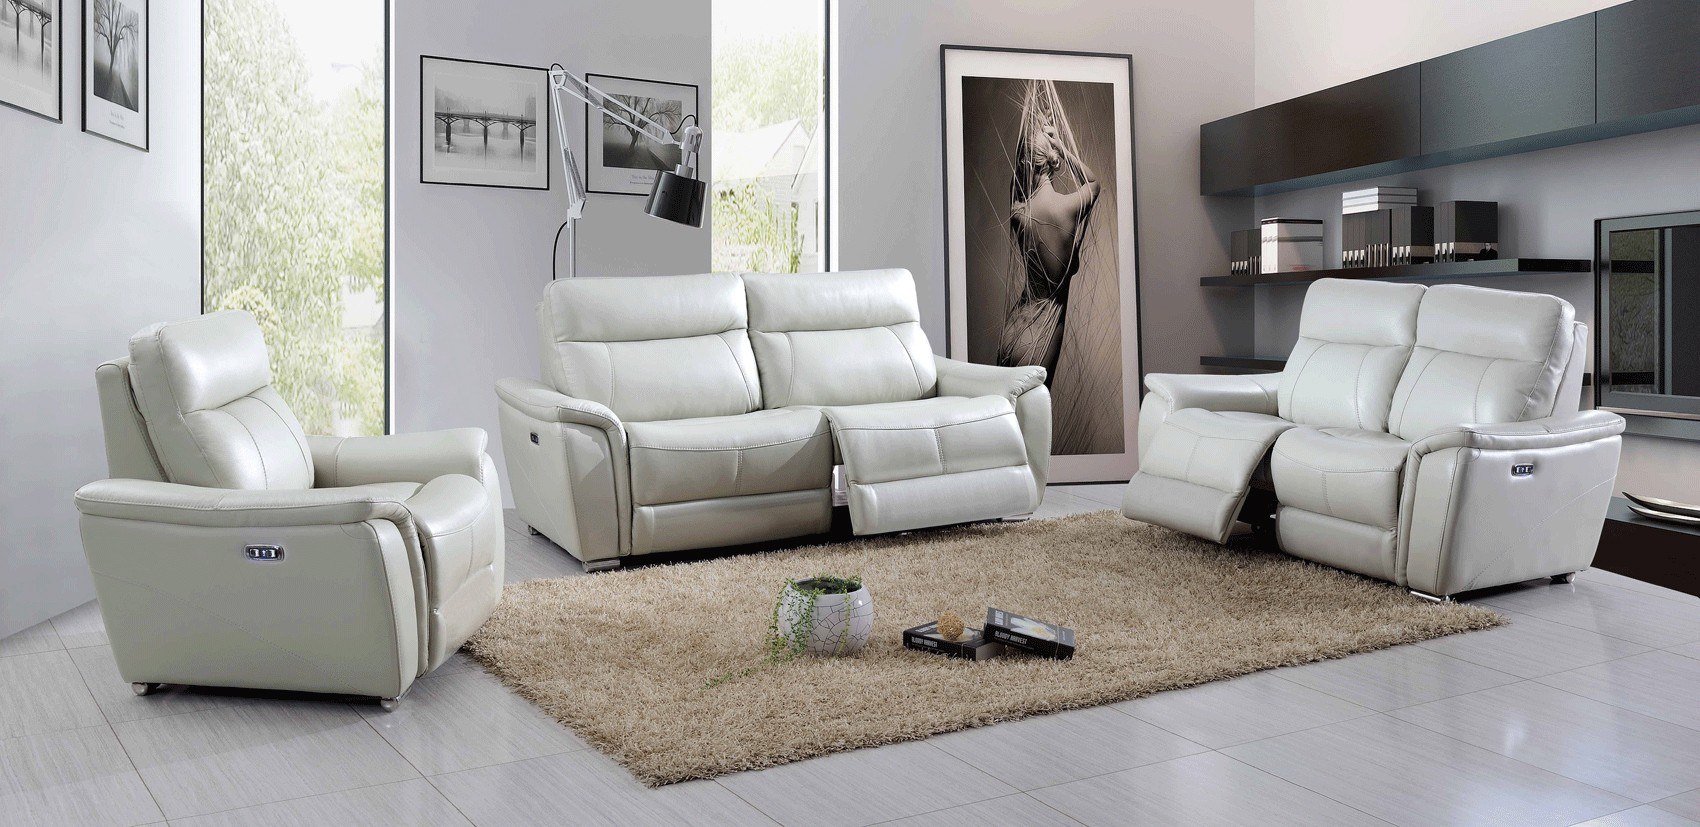 furniture-banner-238